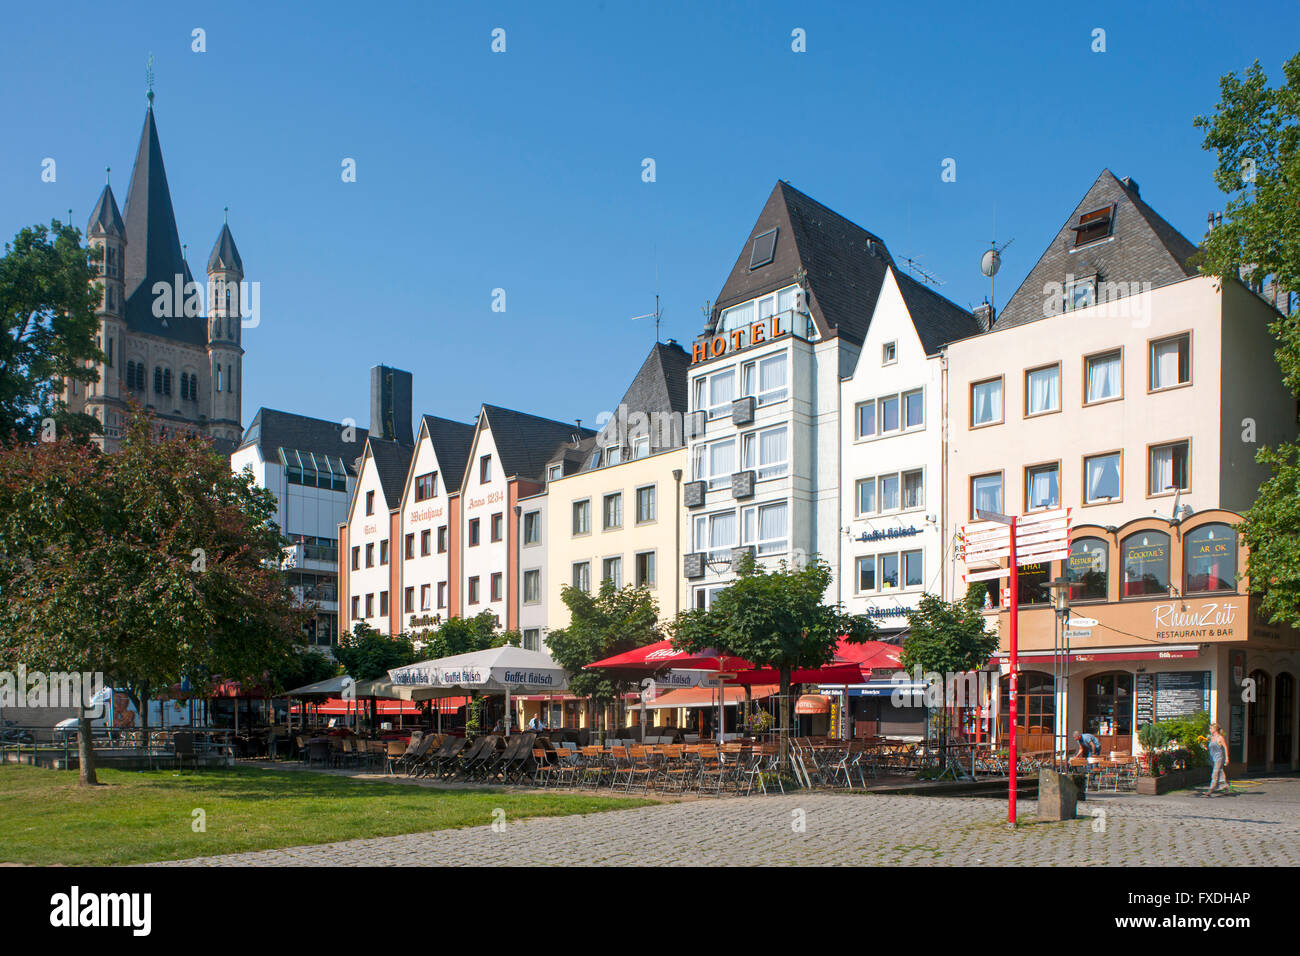 k ln altstadt rheinuferpromenade kirche gross sankt martin stock photo royalty free image. Black Bedroom Furniture Sets. Home Design Ideas